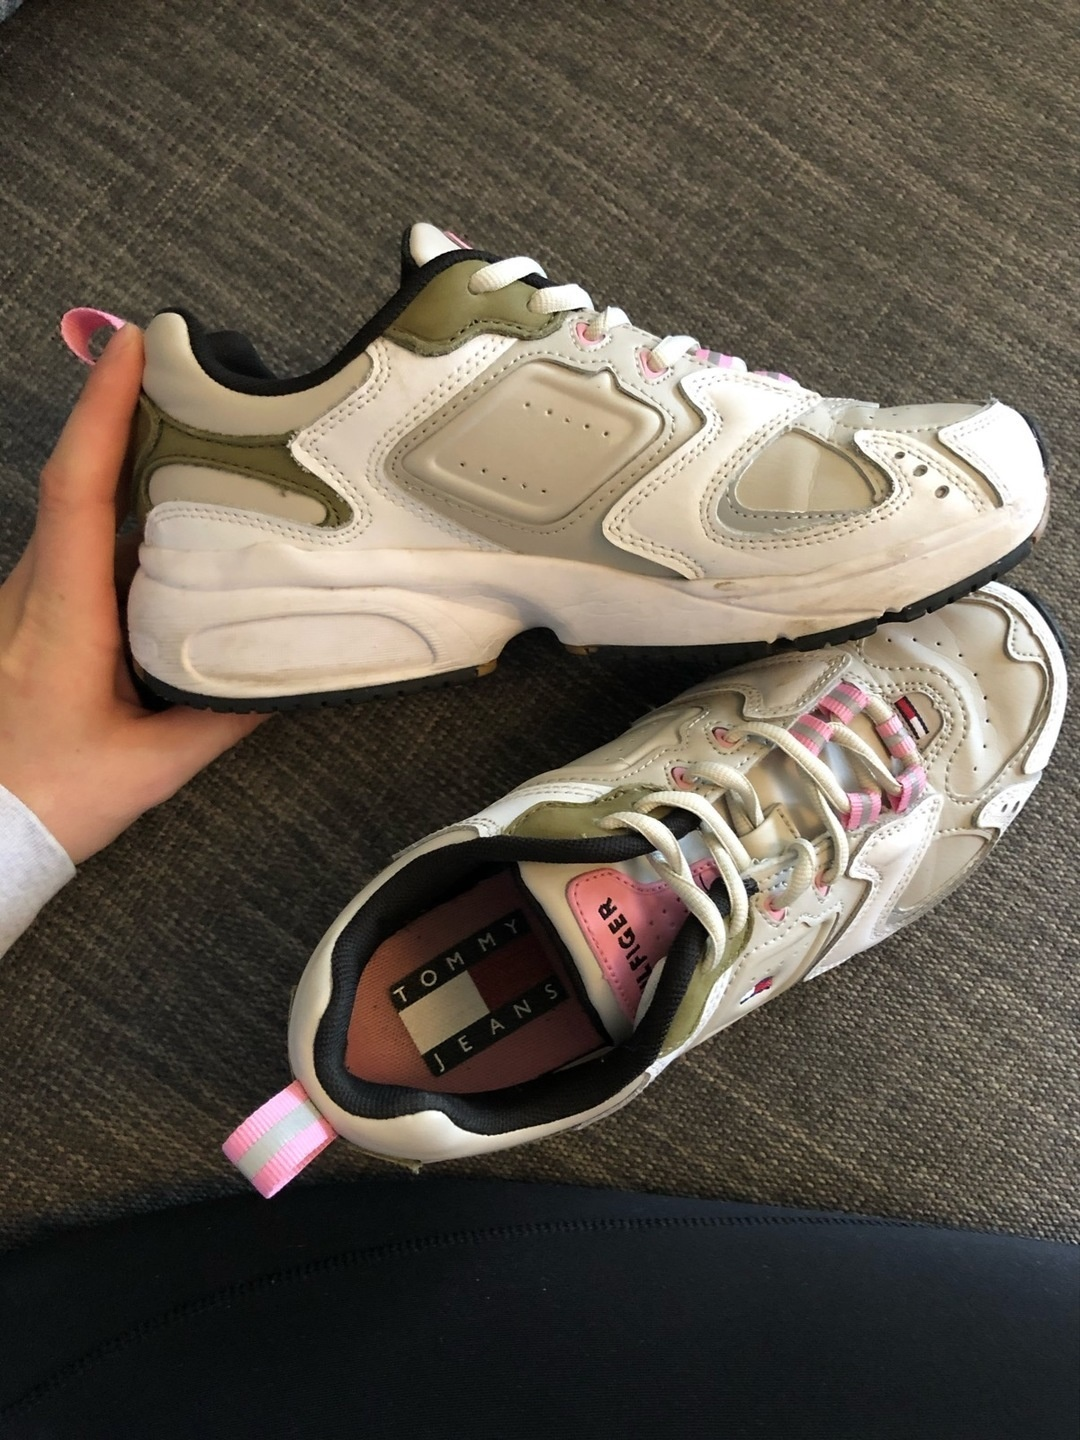 Women's sneakers - TOMMY HILFIGER photo 1